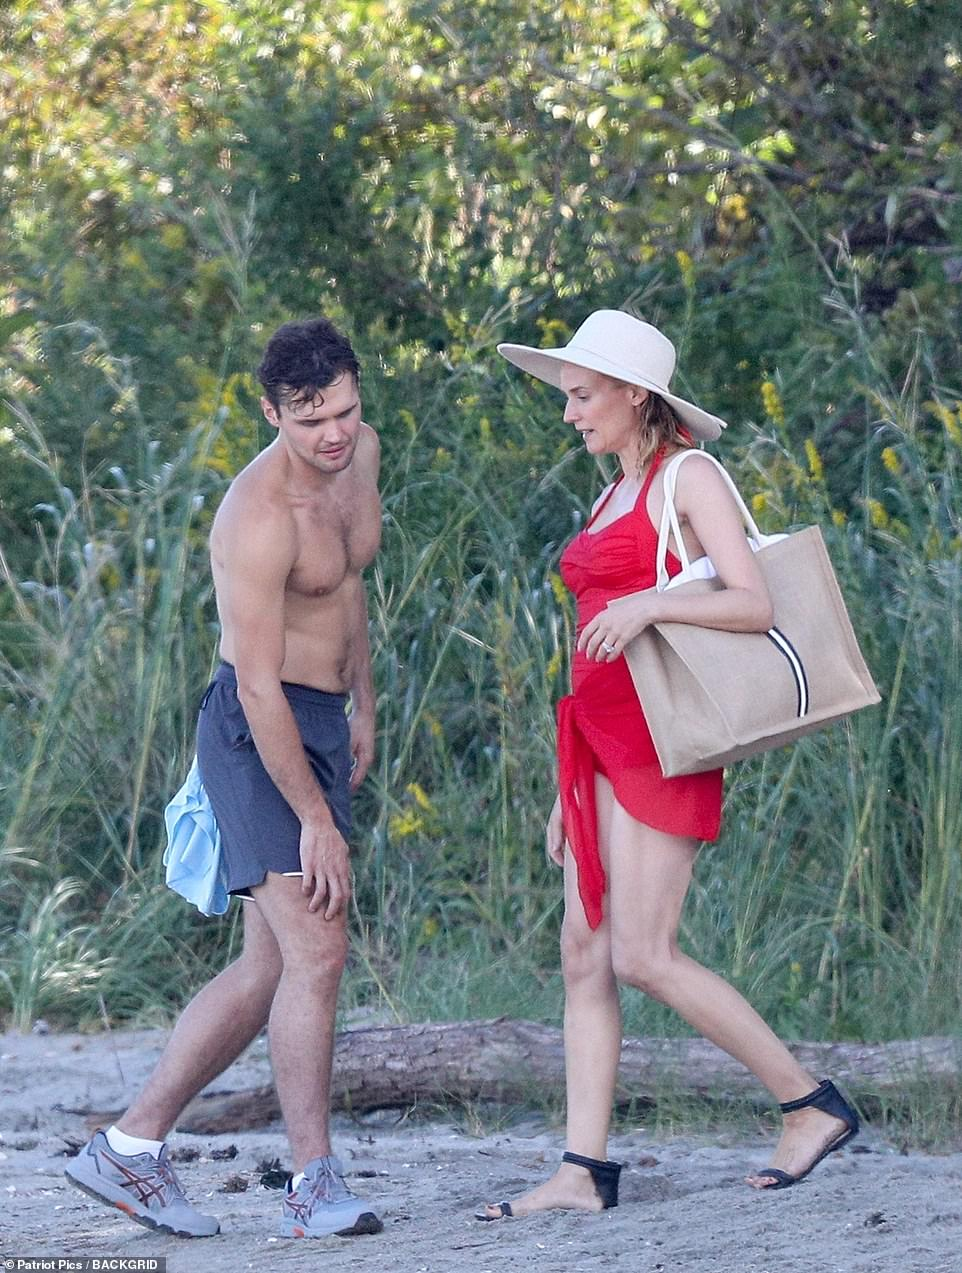 Packing up: The actress continued her chat with Ray as she prepared to leave the beach